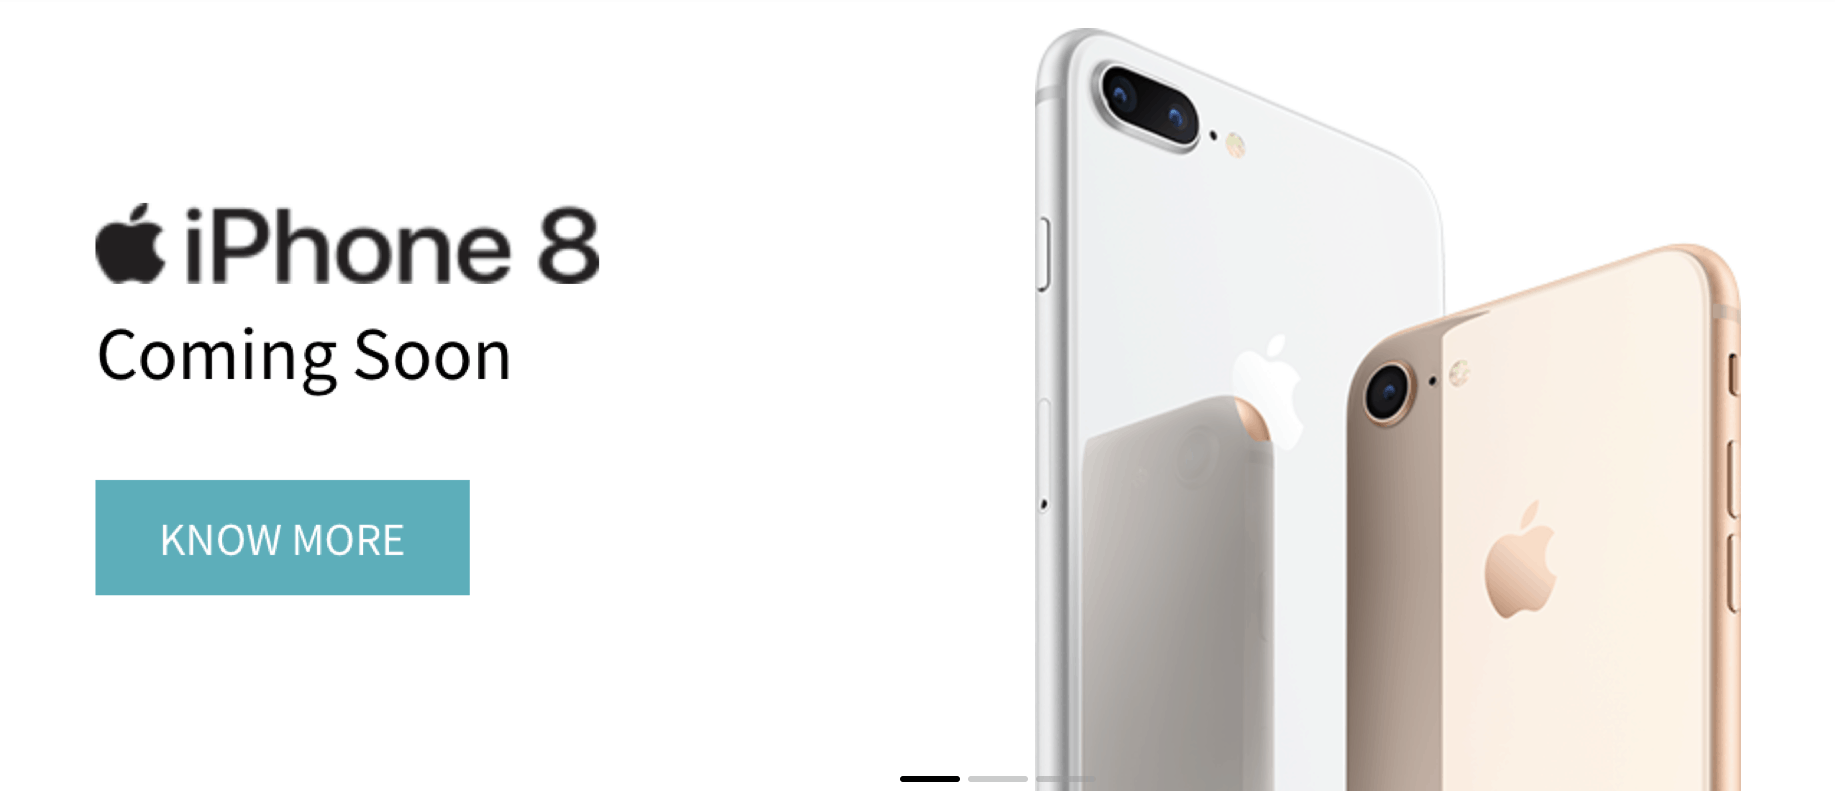 IPhone 8 And IPhone 8 Plus Arrive At Ingram Micro On Friday, 29th Sep